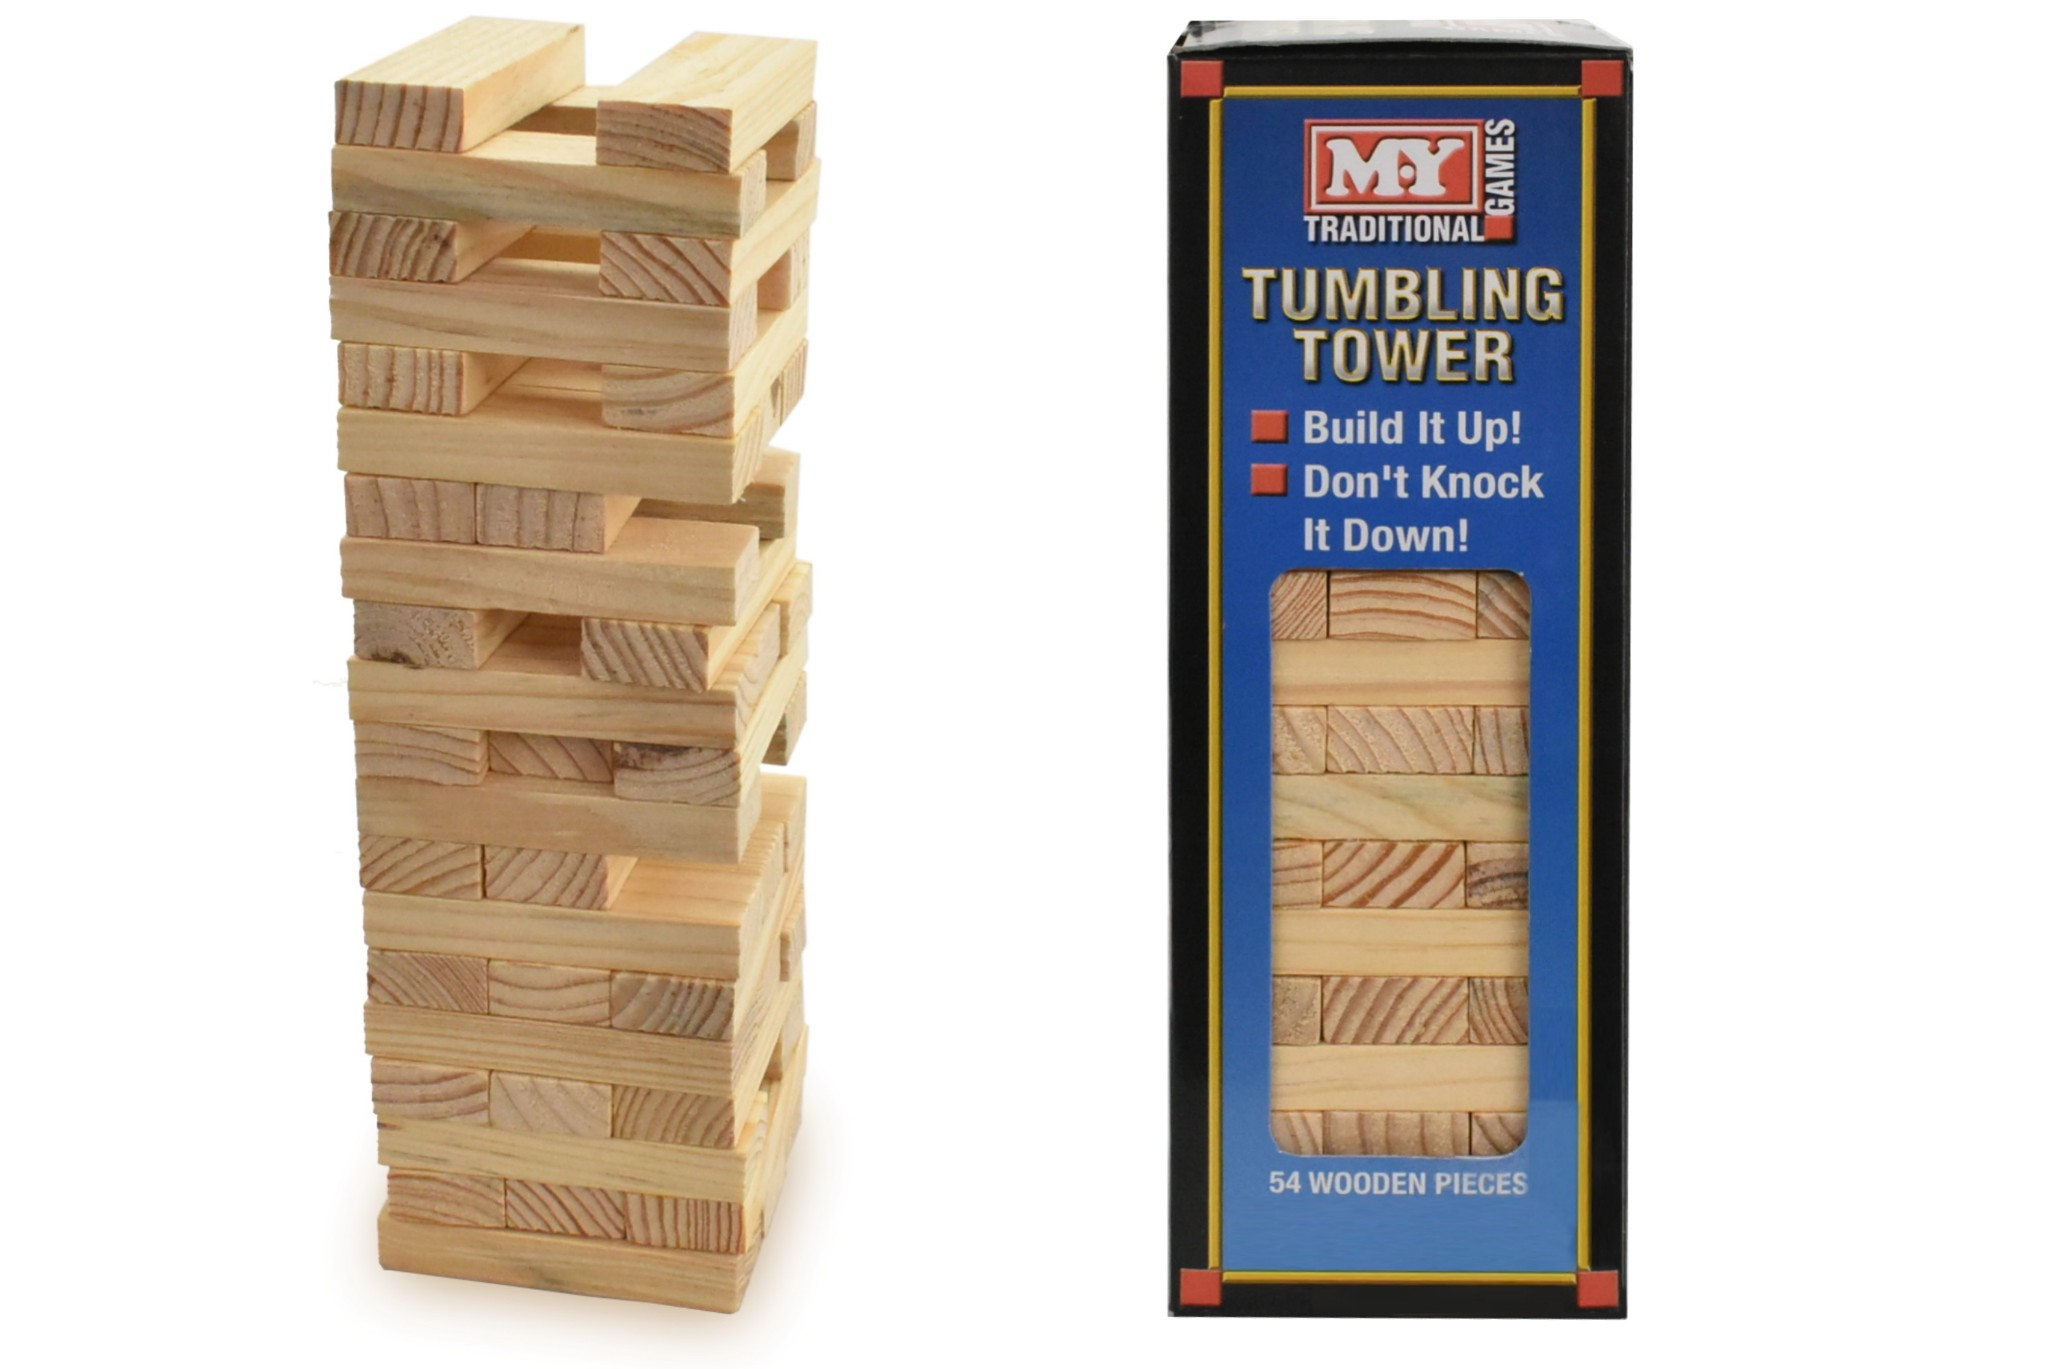 TOWER TRADITIONAL WOODEN GAME PUZZLE